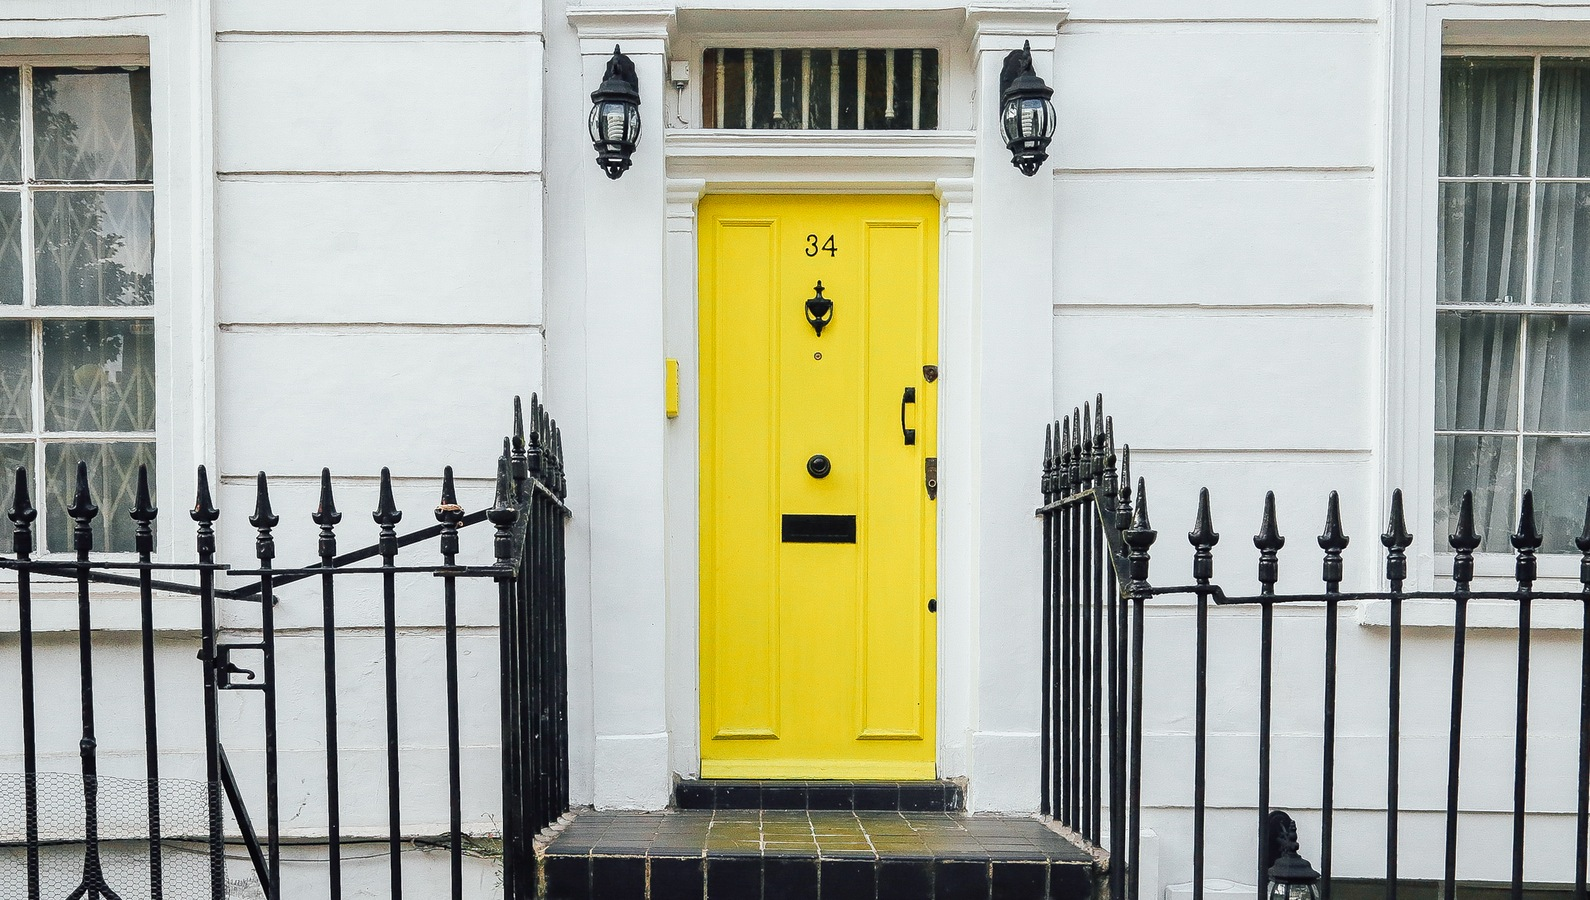 Rental property with a yellow door